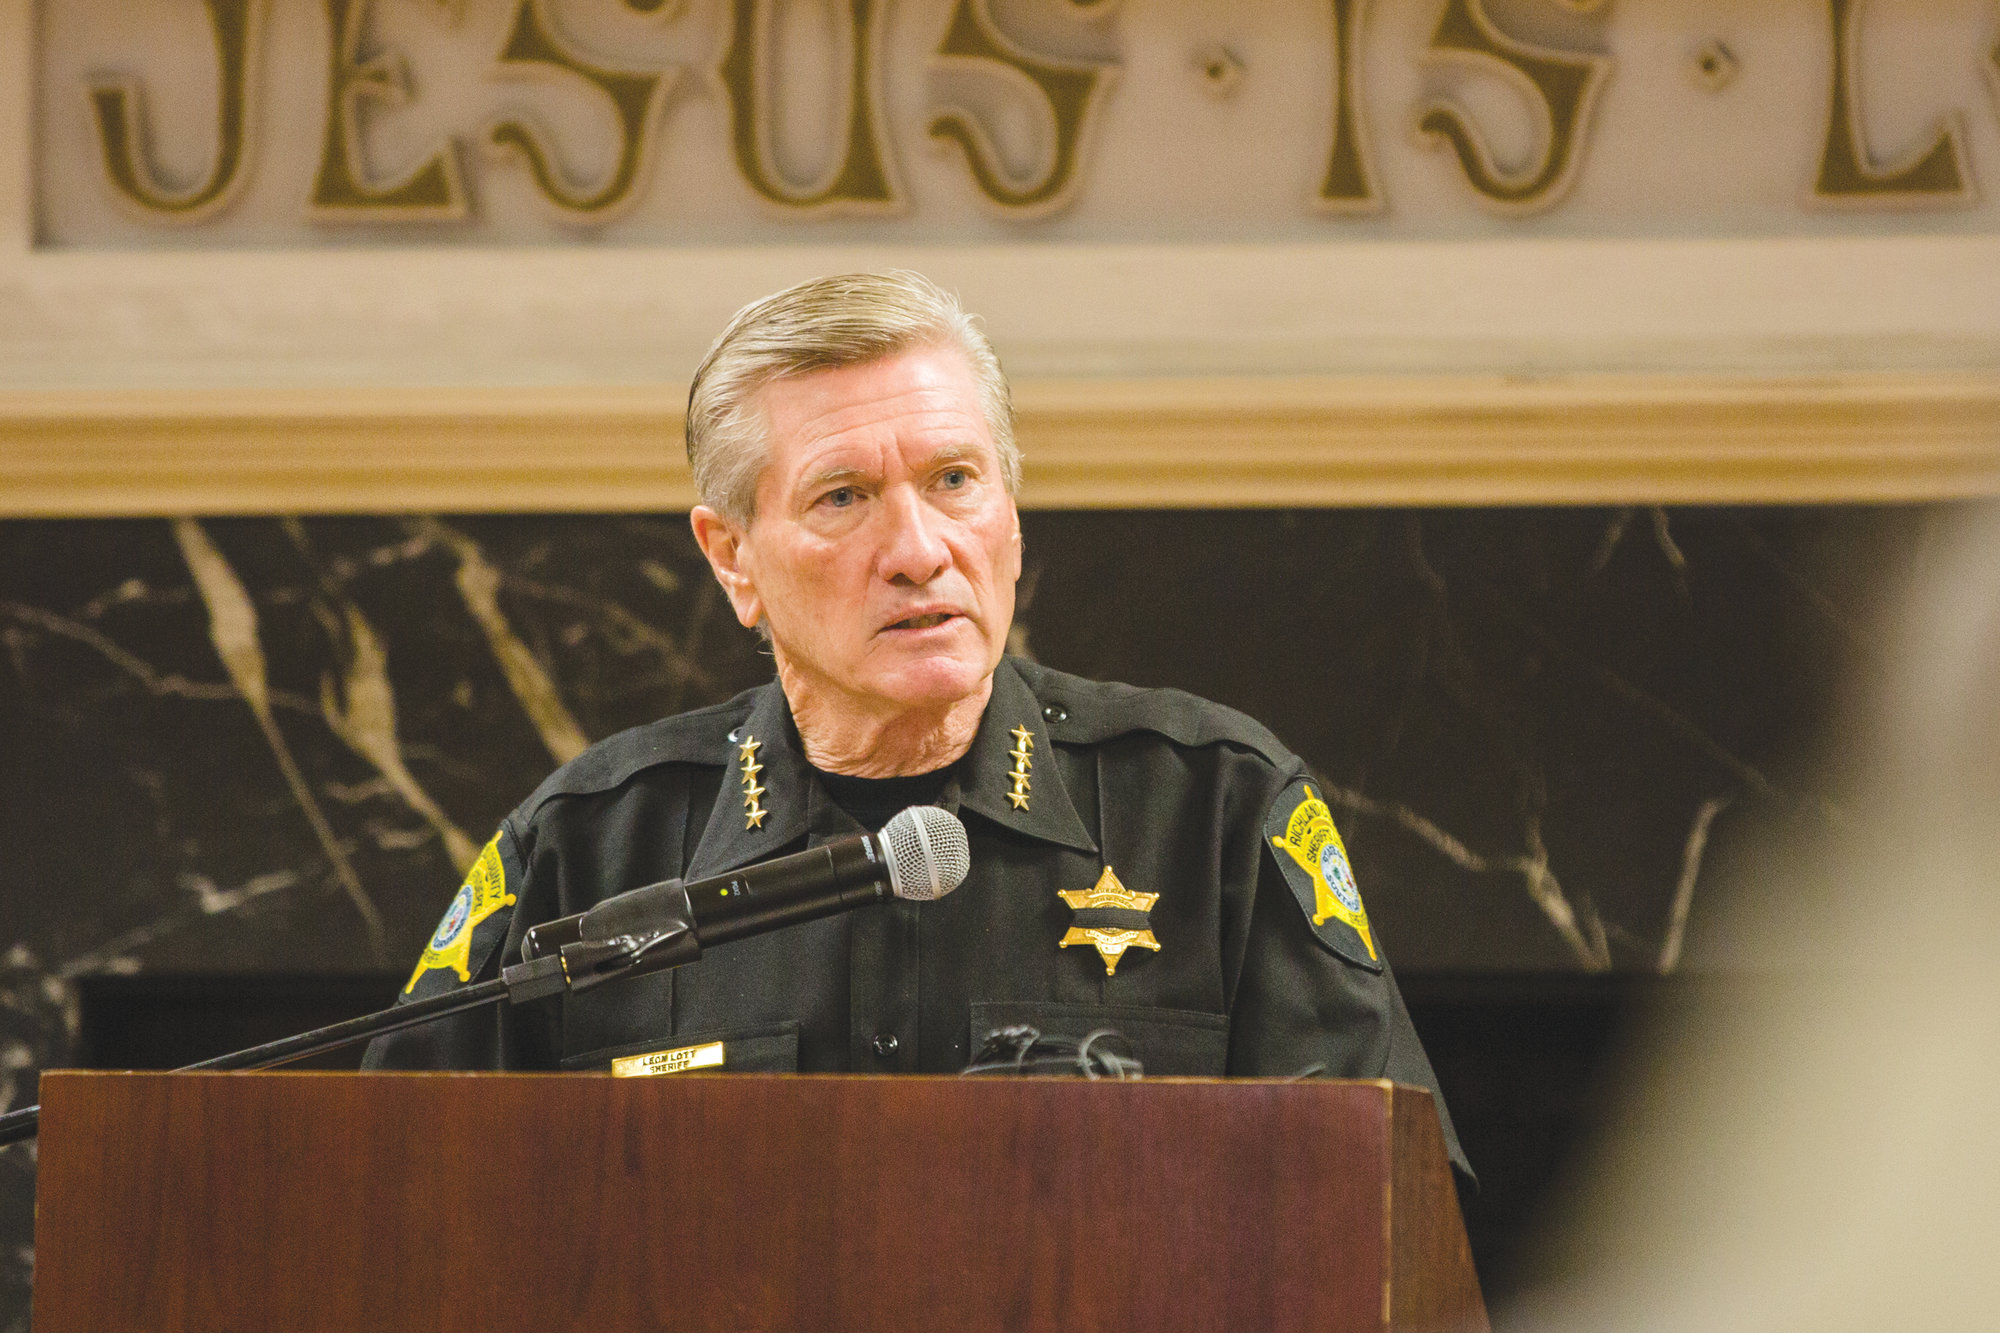 Sheriff Leon Lott with the Richland County Sheriff's Department speaks at the breakfast.